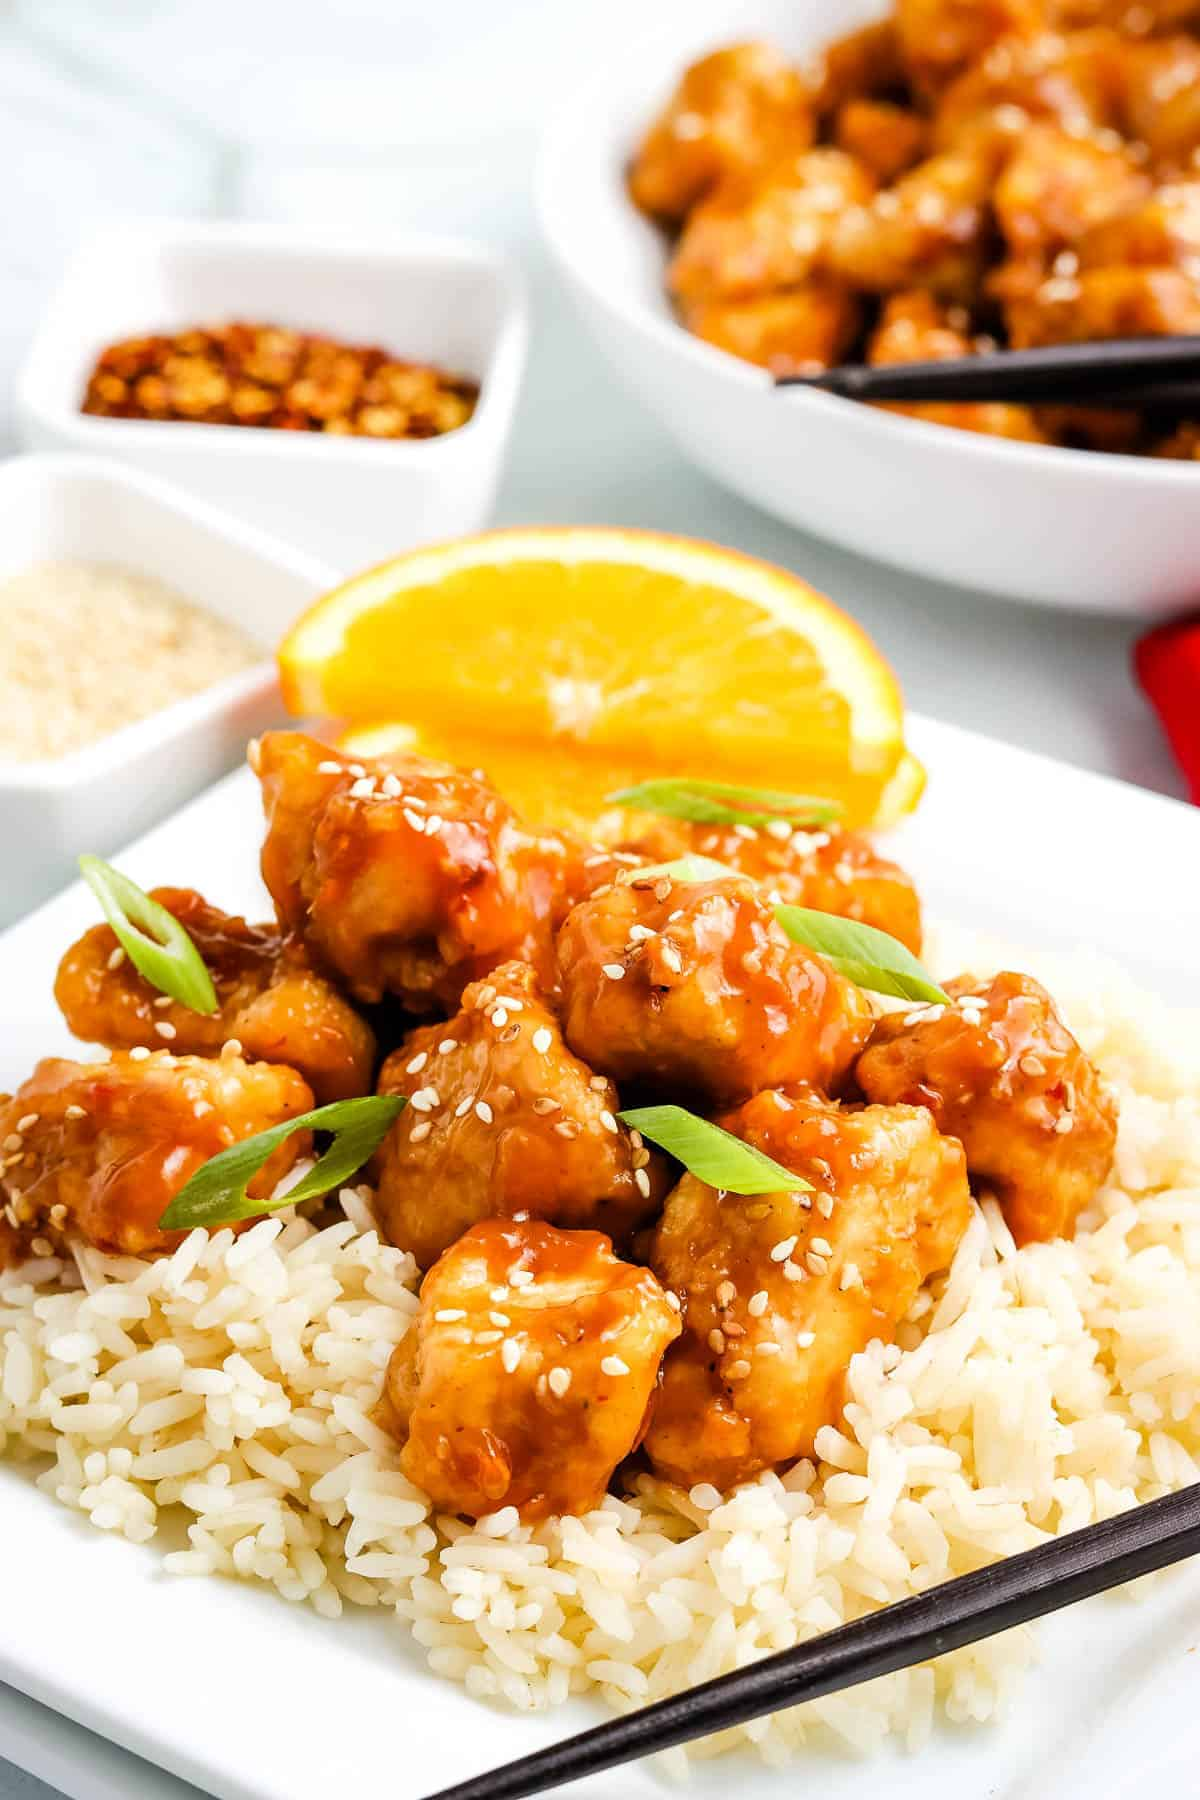 Orange chicken on top of rice on plate